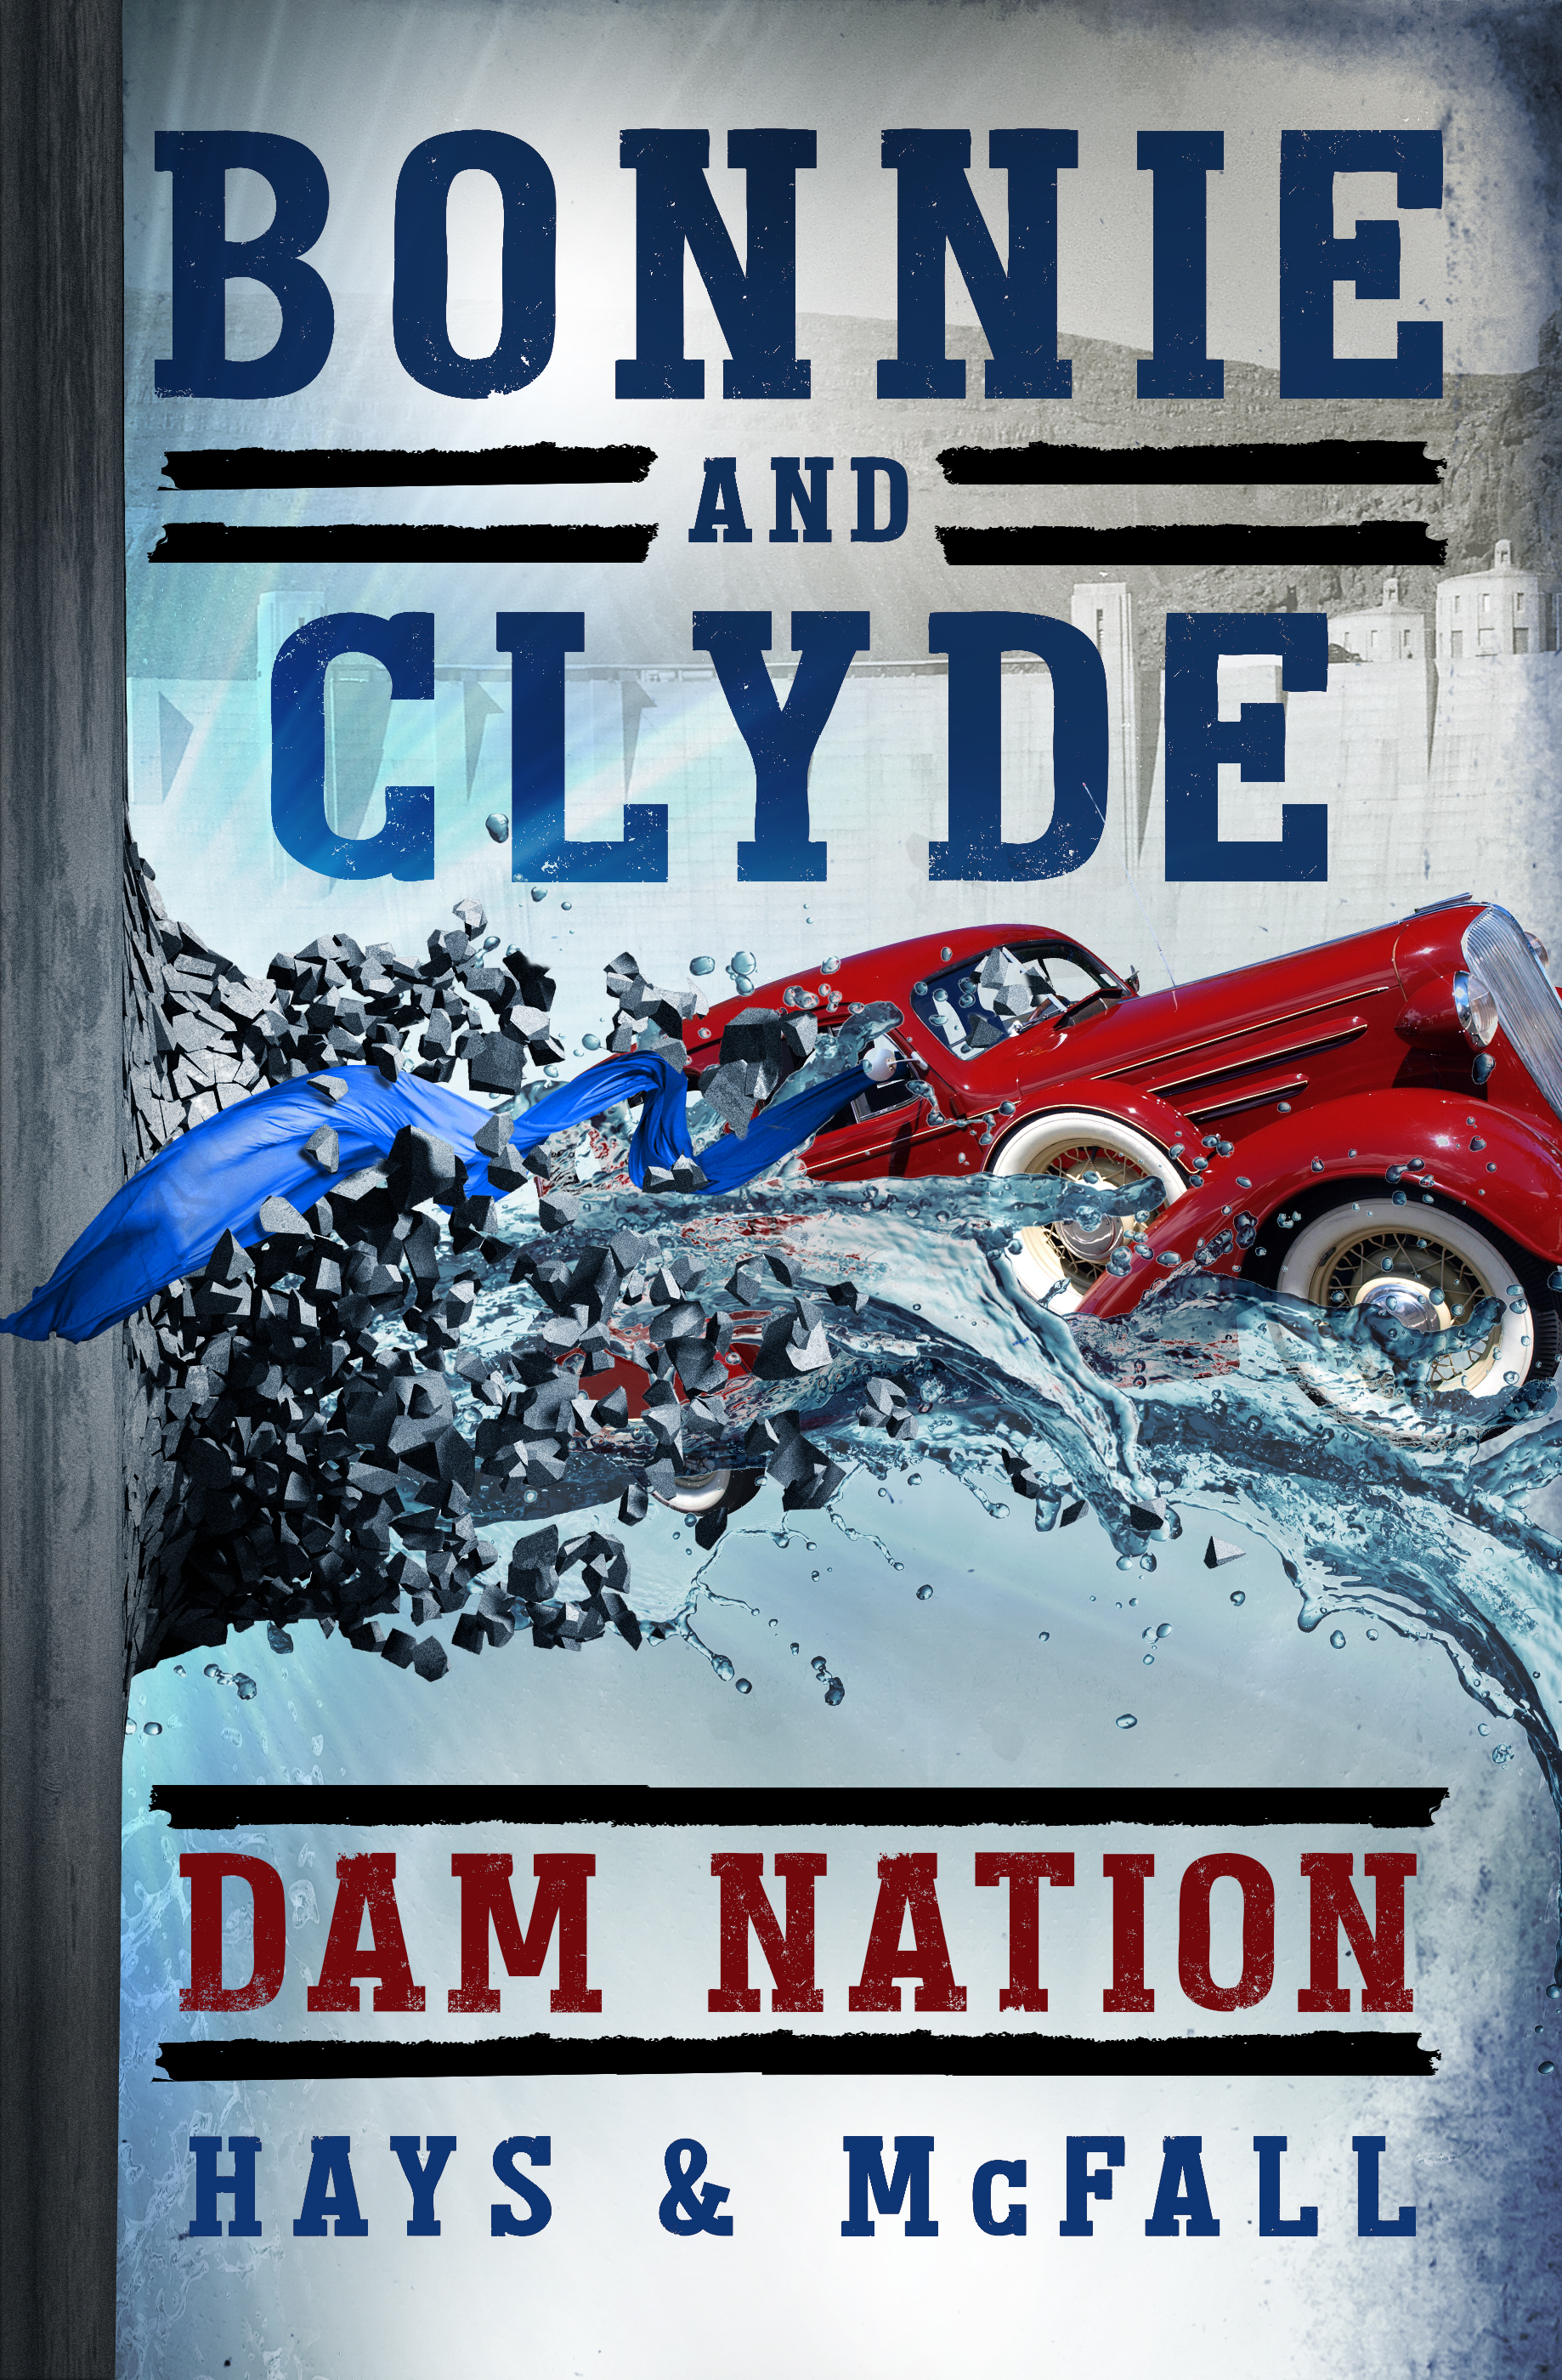 Bonnie and Clyde Dam Nation_Hays and McFall_DamNation_FrontCover_978-0-9974113-6-2.jpg